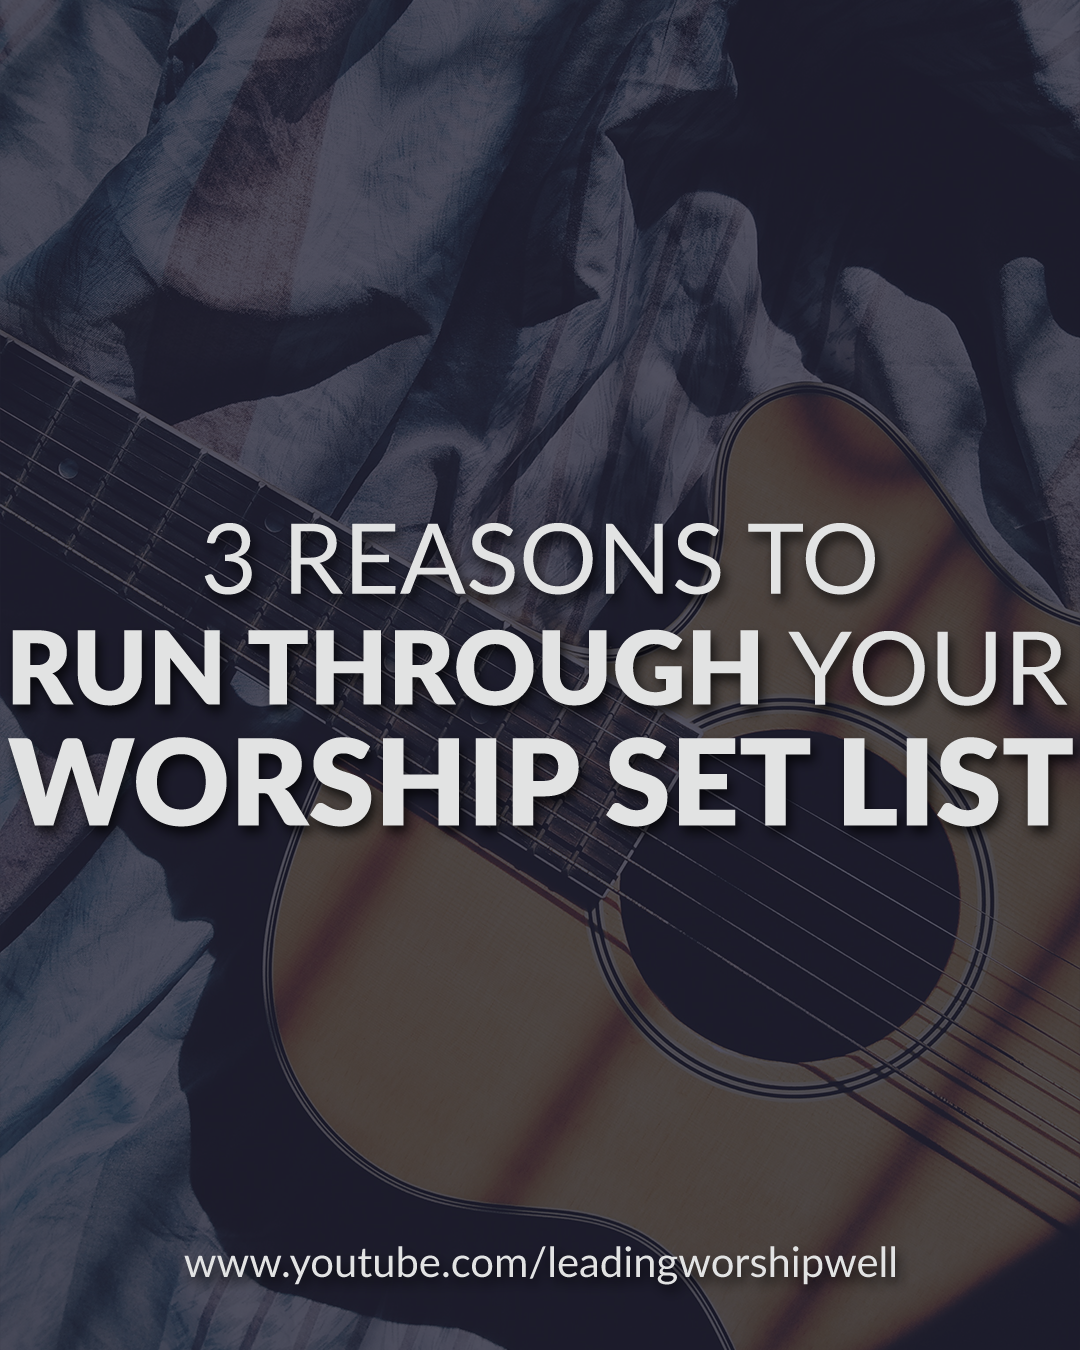 3 Reasons You Need To Run Through Your Worship Set List (Video)